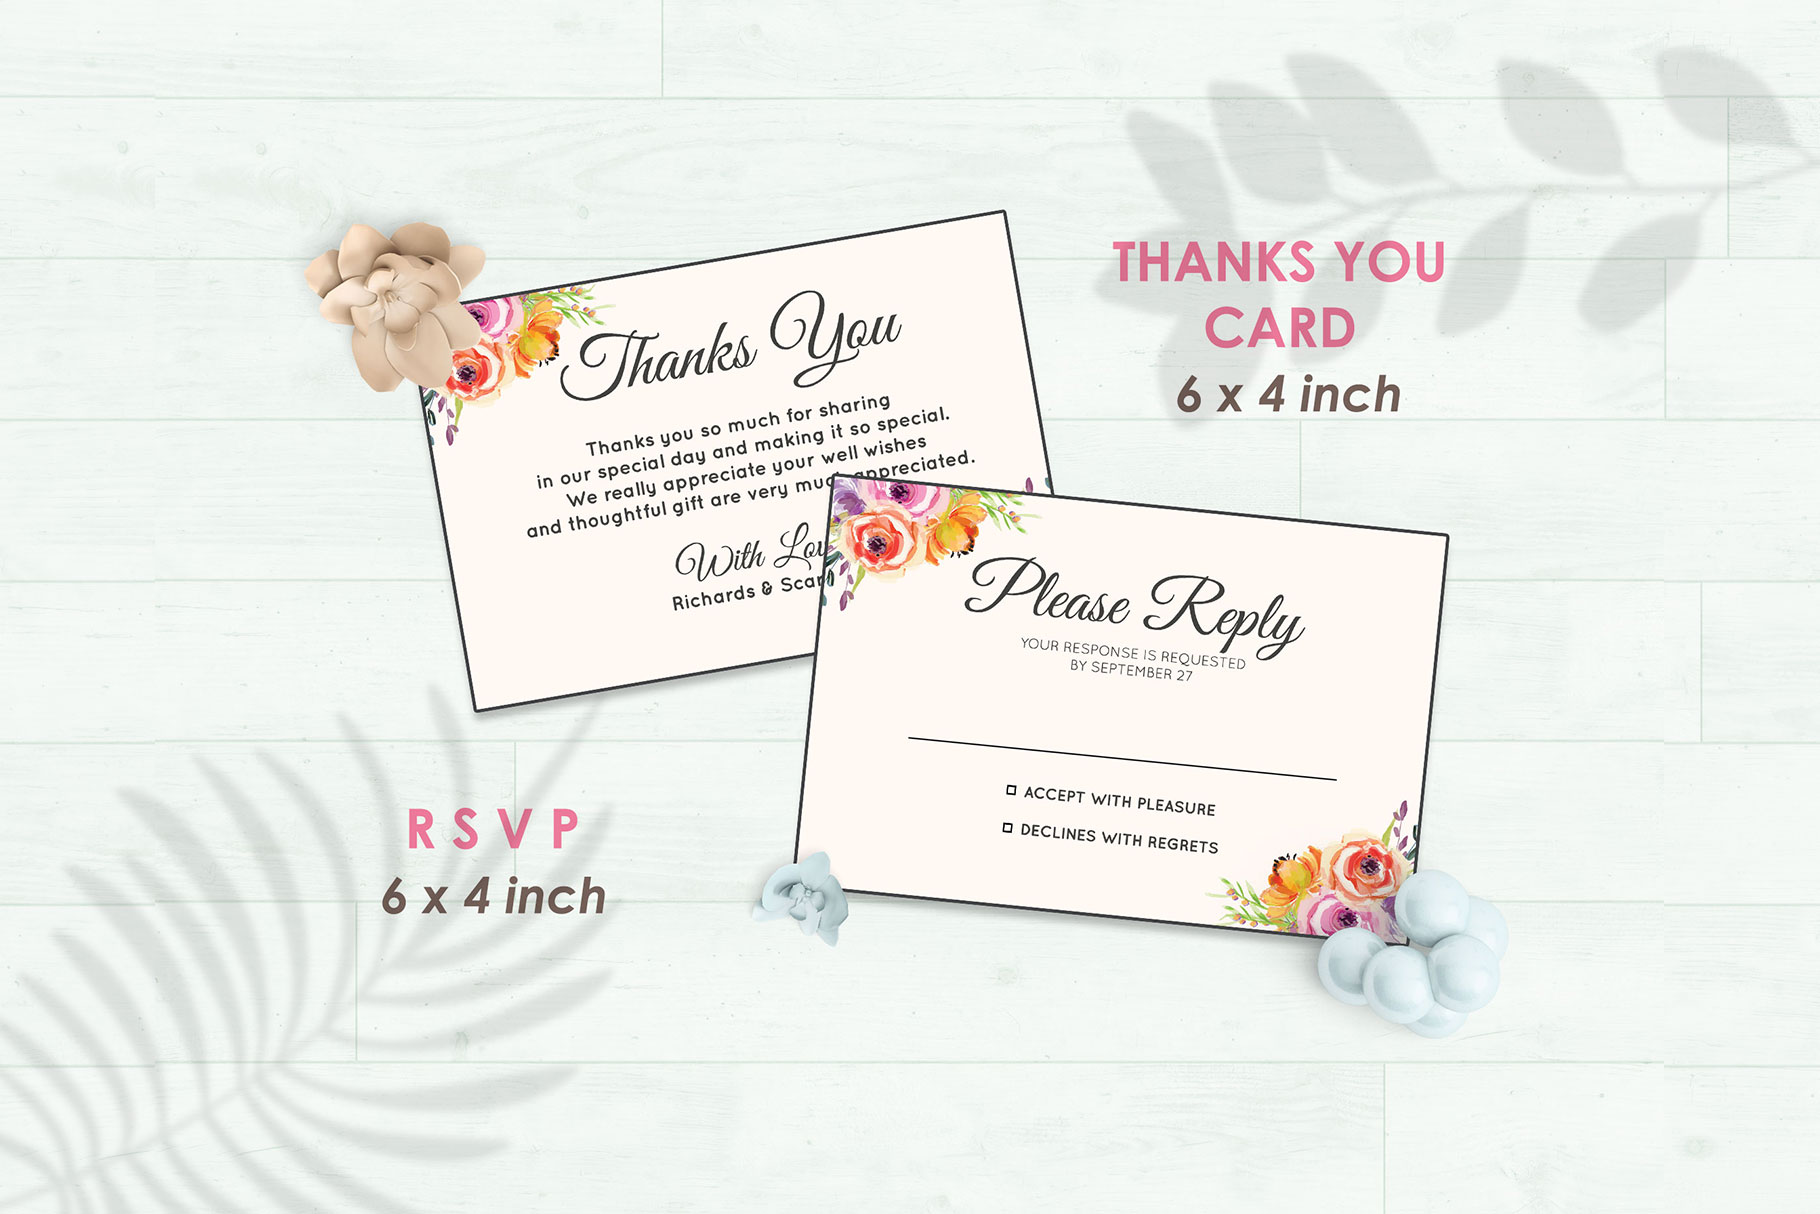 Wedding Invitation Set #5 Watercolor Floral Flower Style example image 4